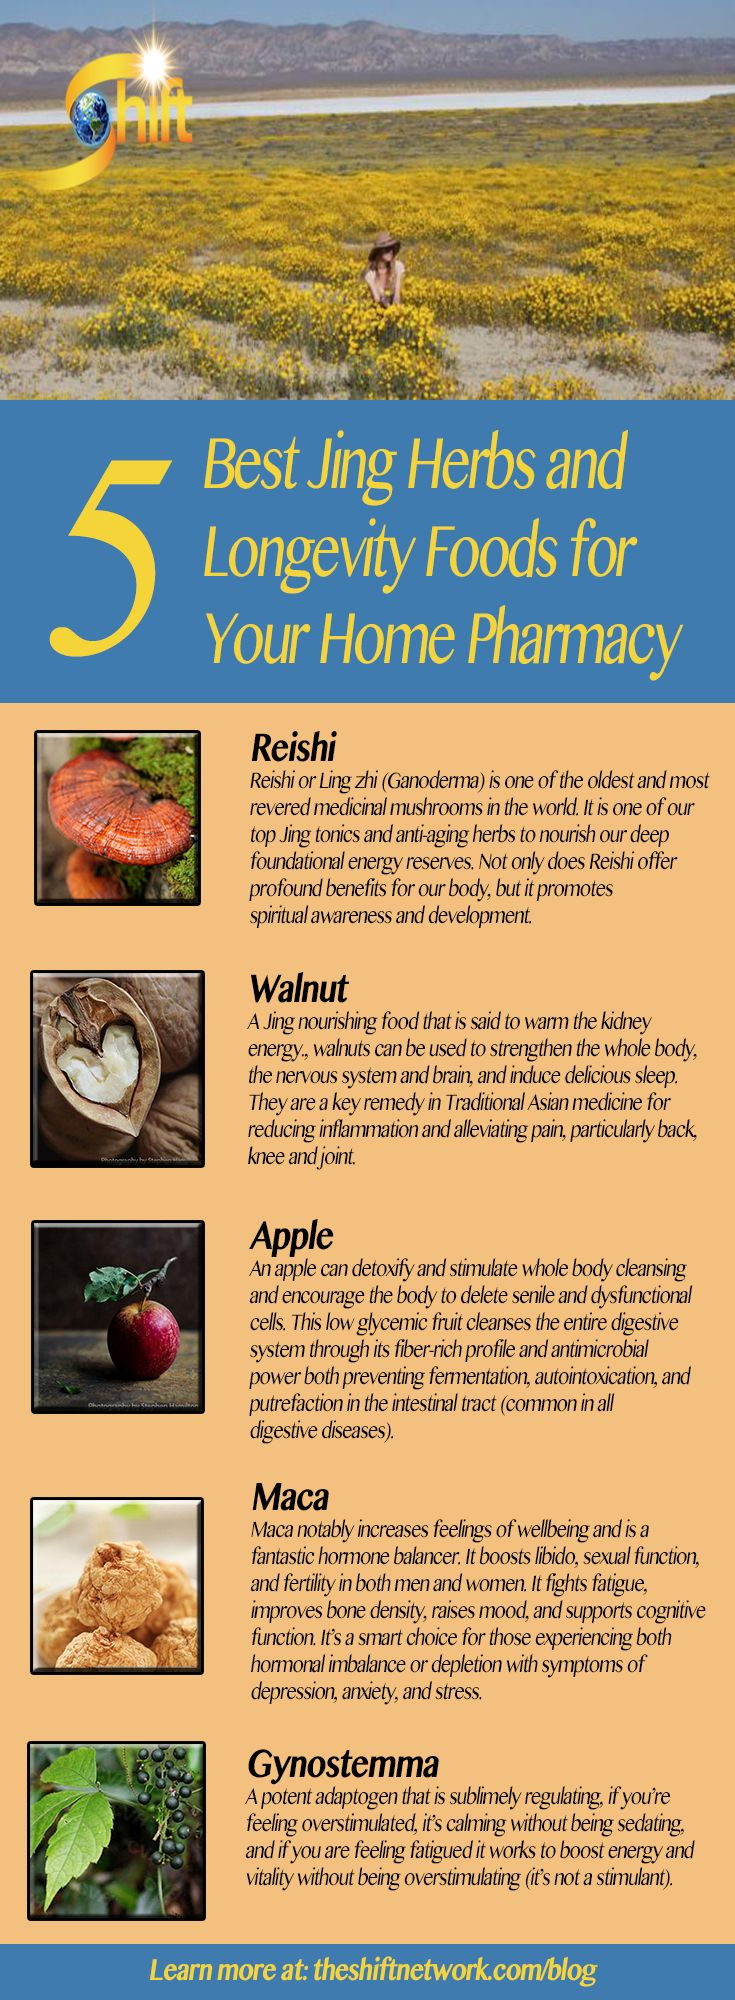 5 Best Jin Herbs and Longevity Foods for Your Home Pharmacy - In Traditional Asian Medicine, our core energy is called Jing. It is related to our vitality, longevity, creativity, adaptability and resistance to illness. Keep certain herbs and foods in your home pharmacy to boost your Jing including the following herbs. http://blog.theshiftnetwork.com/blog/5-best-jing-herbs-and-longevity-foods-your-